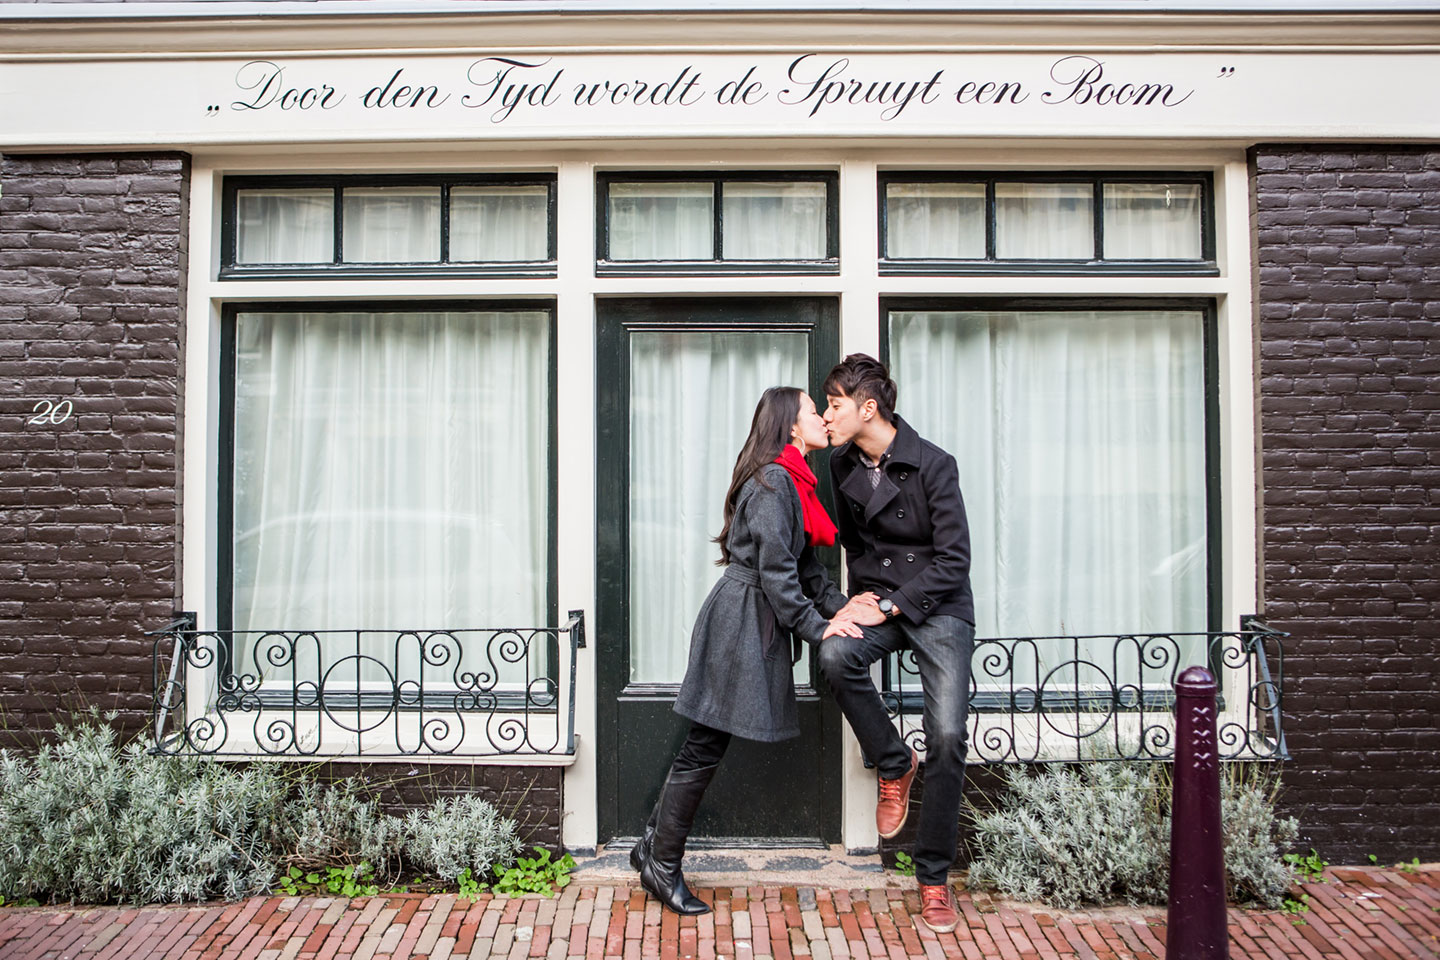 12-pre-wedding-love-shoot-Amsterdam